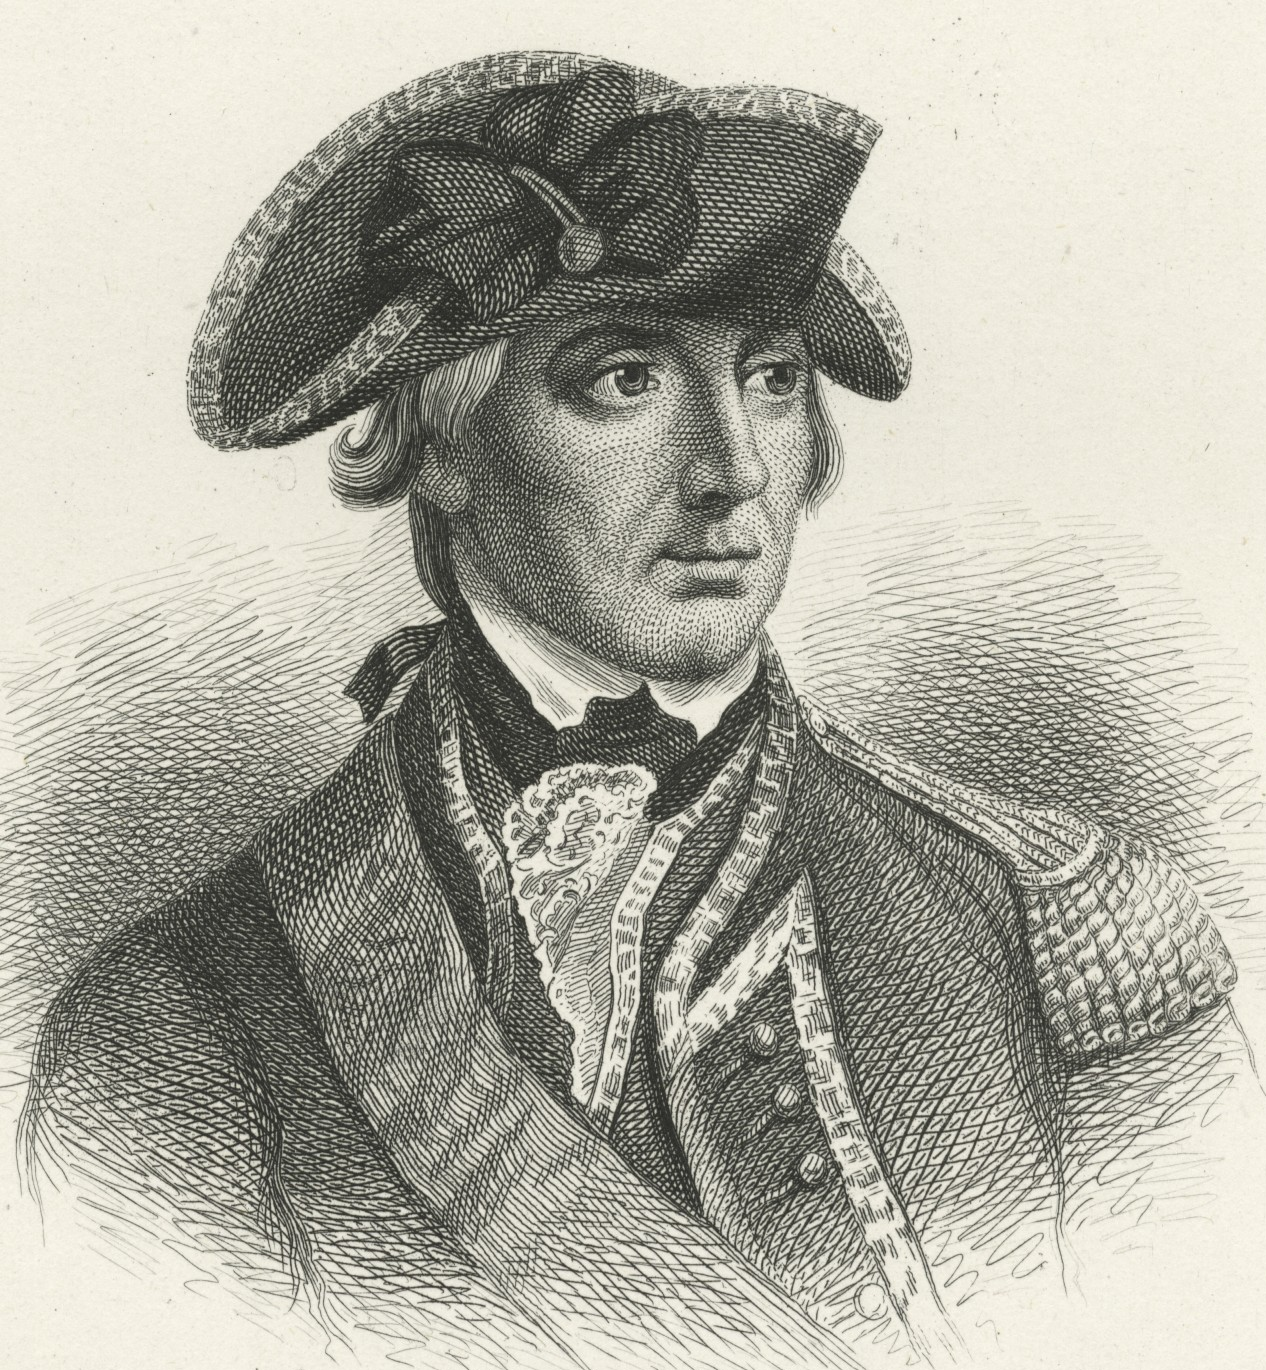 Gen. Sir William Howe